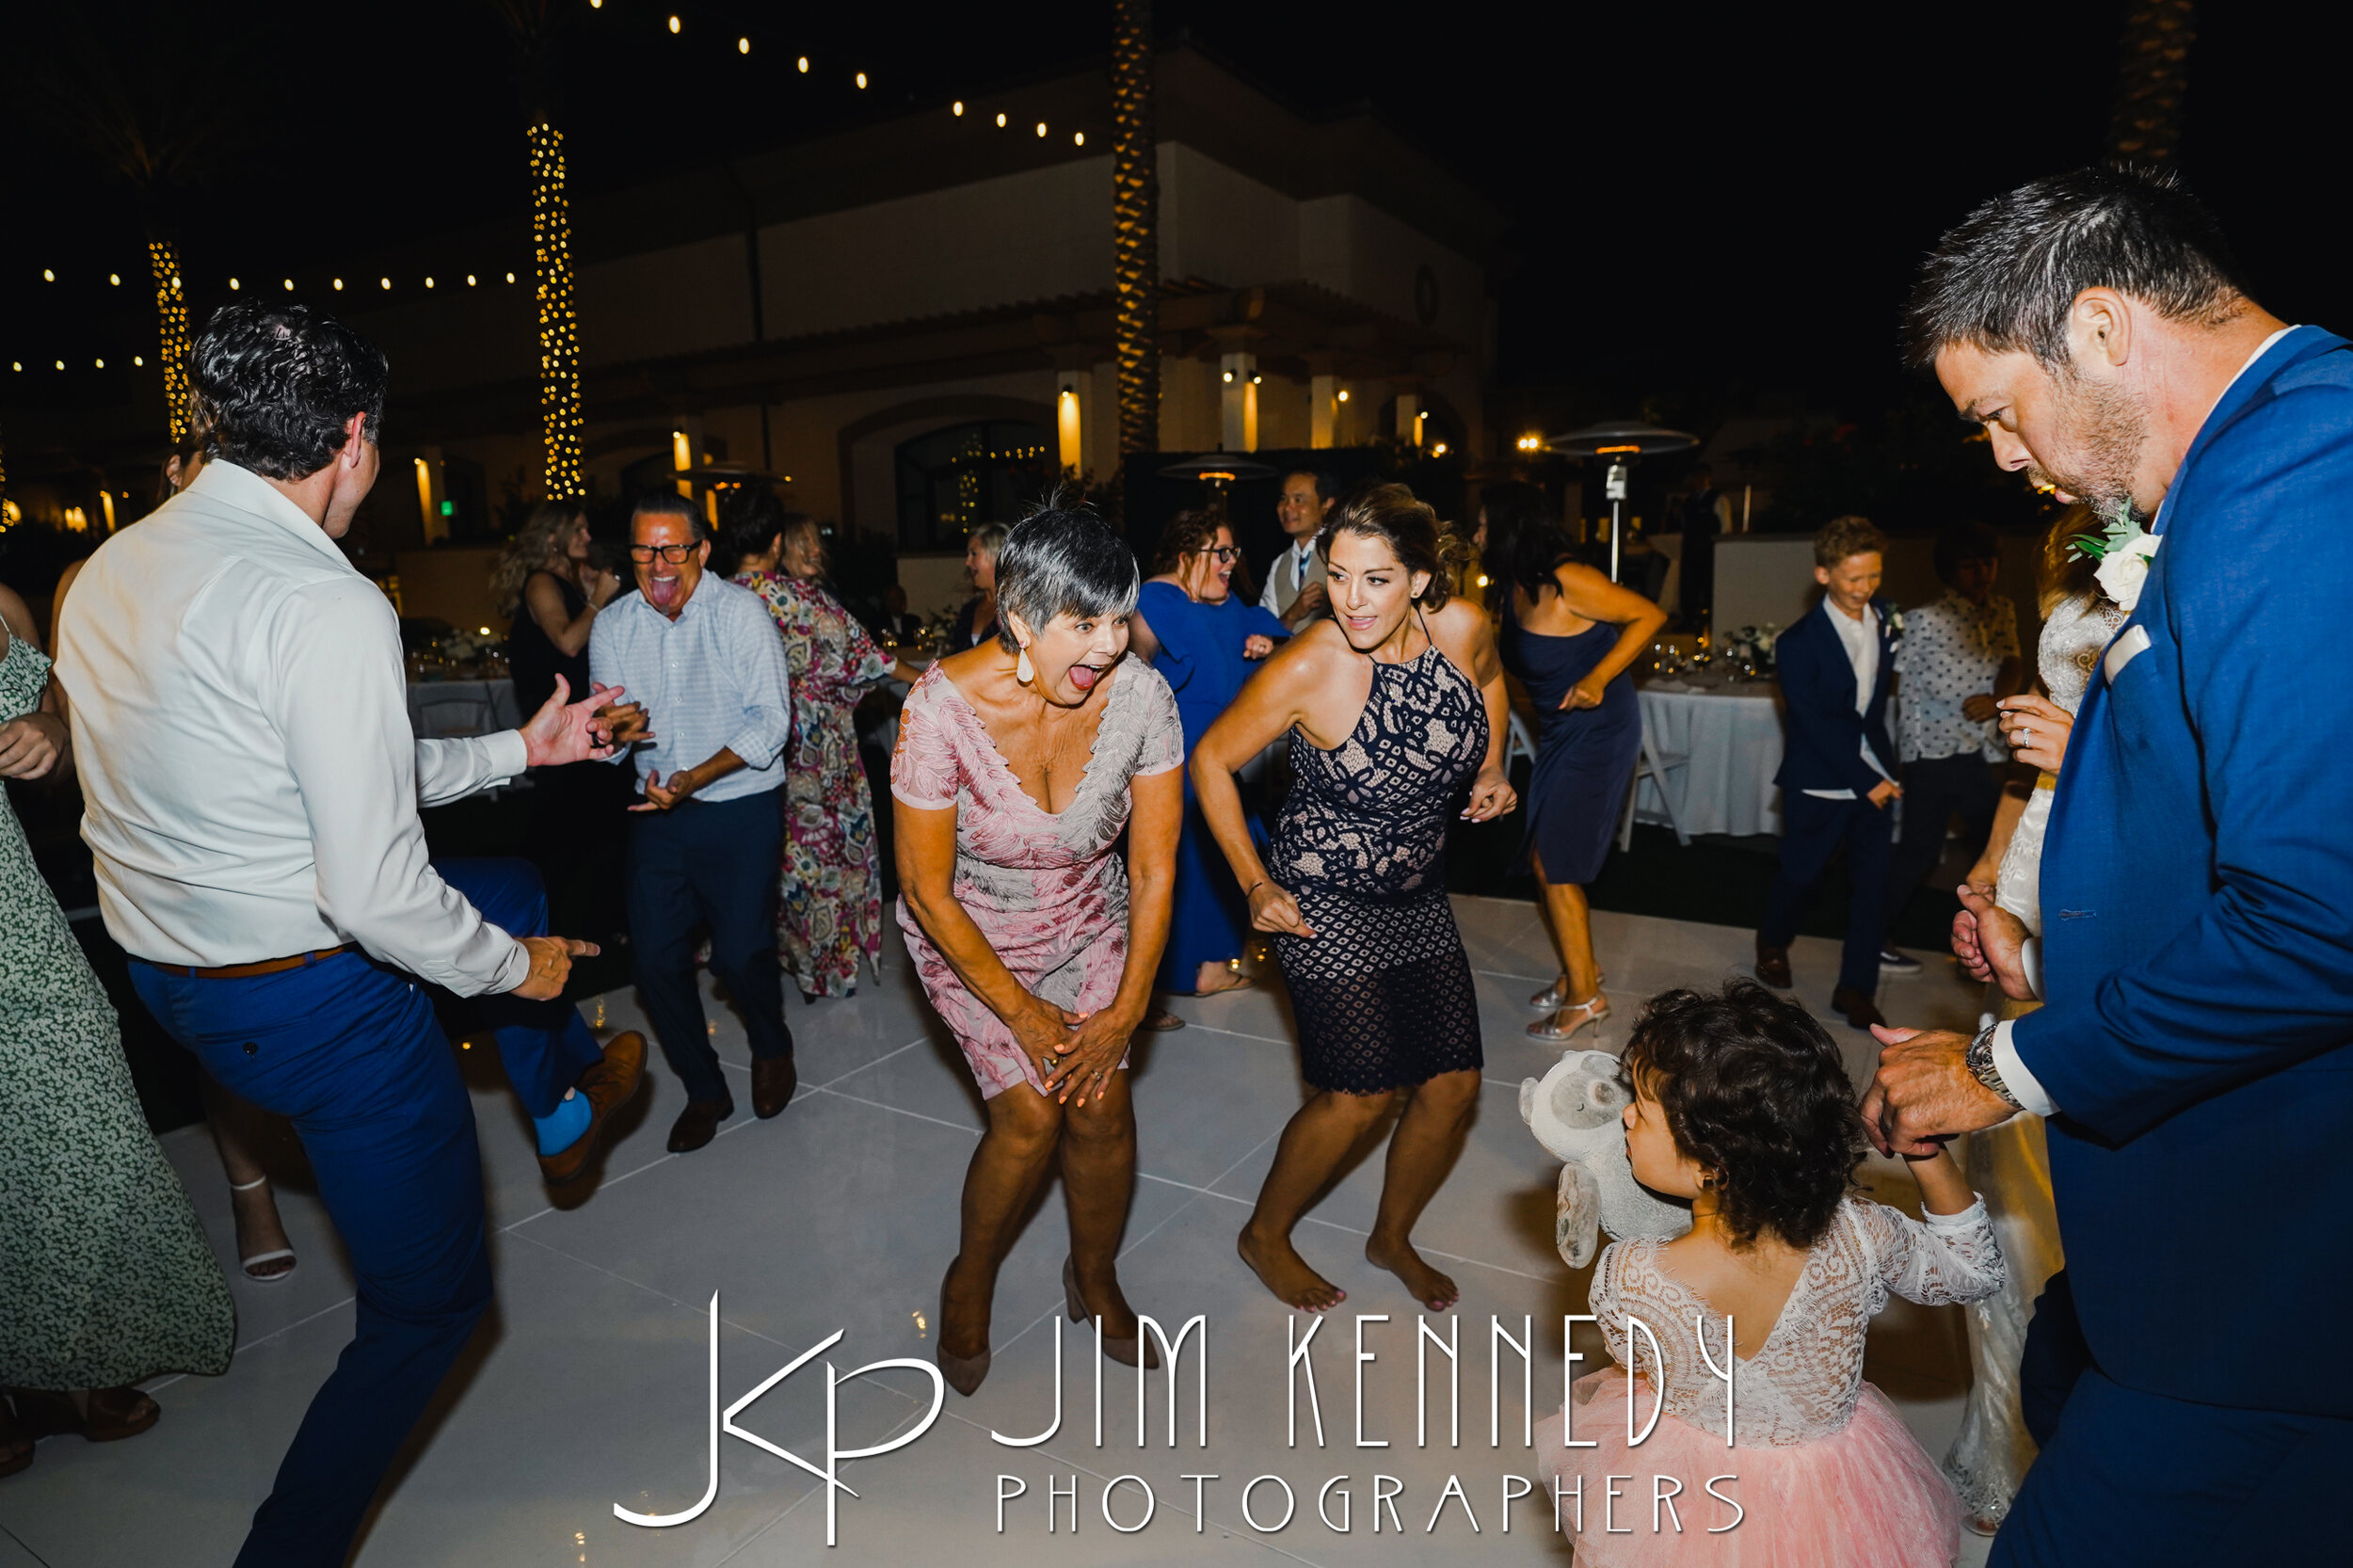 waterfront-hilton-wedding-jim-kennedy-photographers_0192.JPG